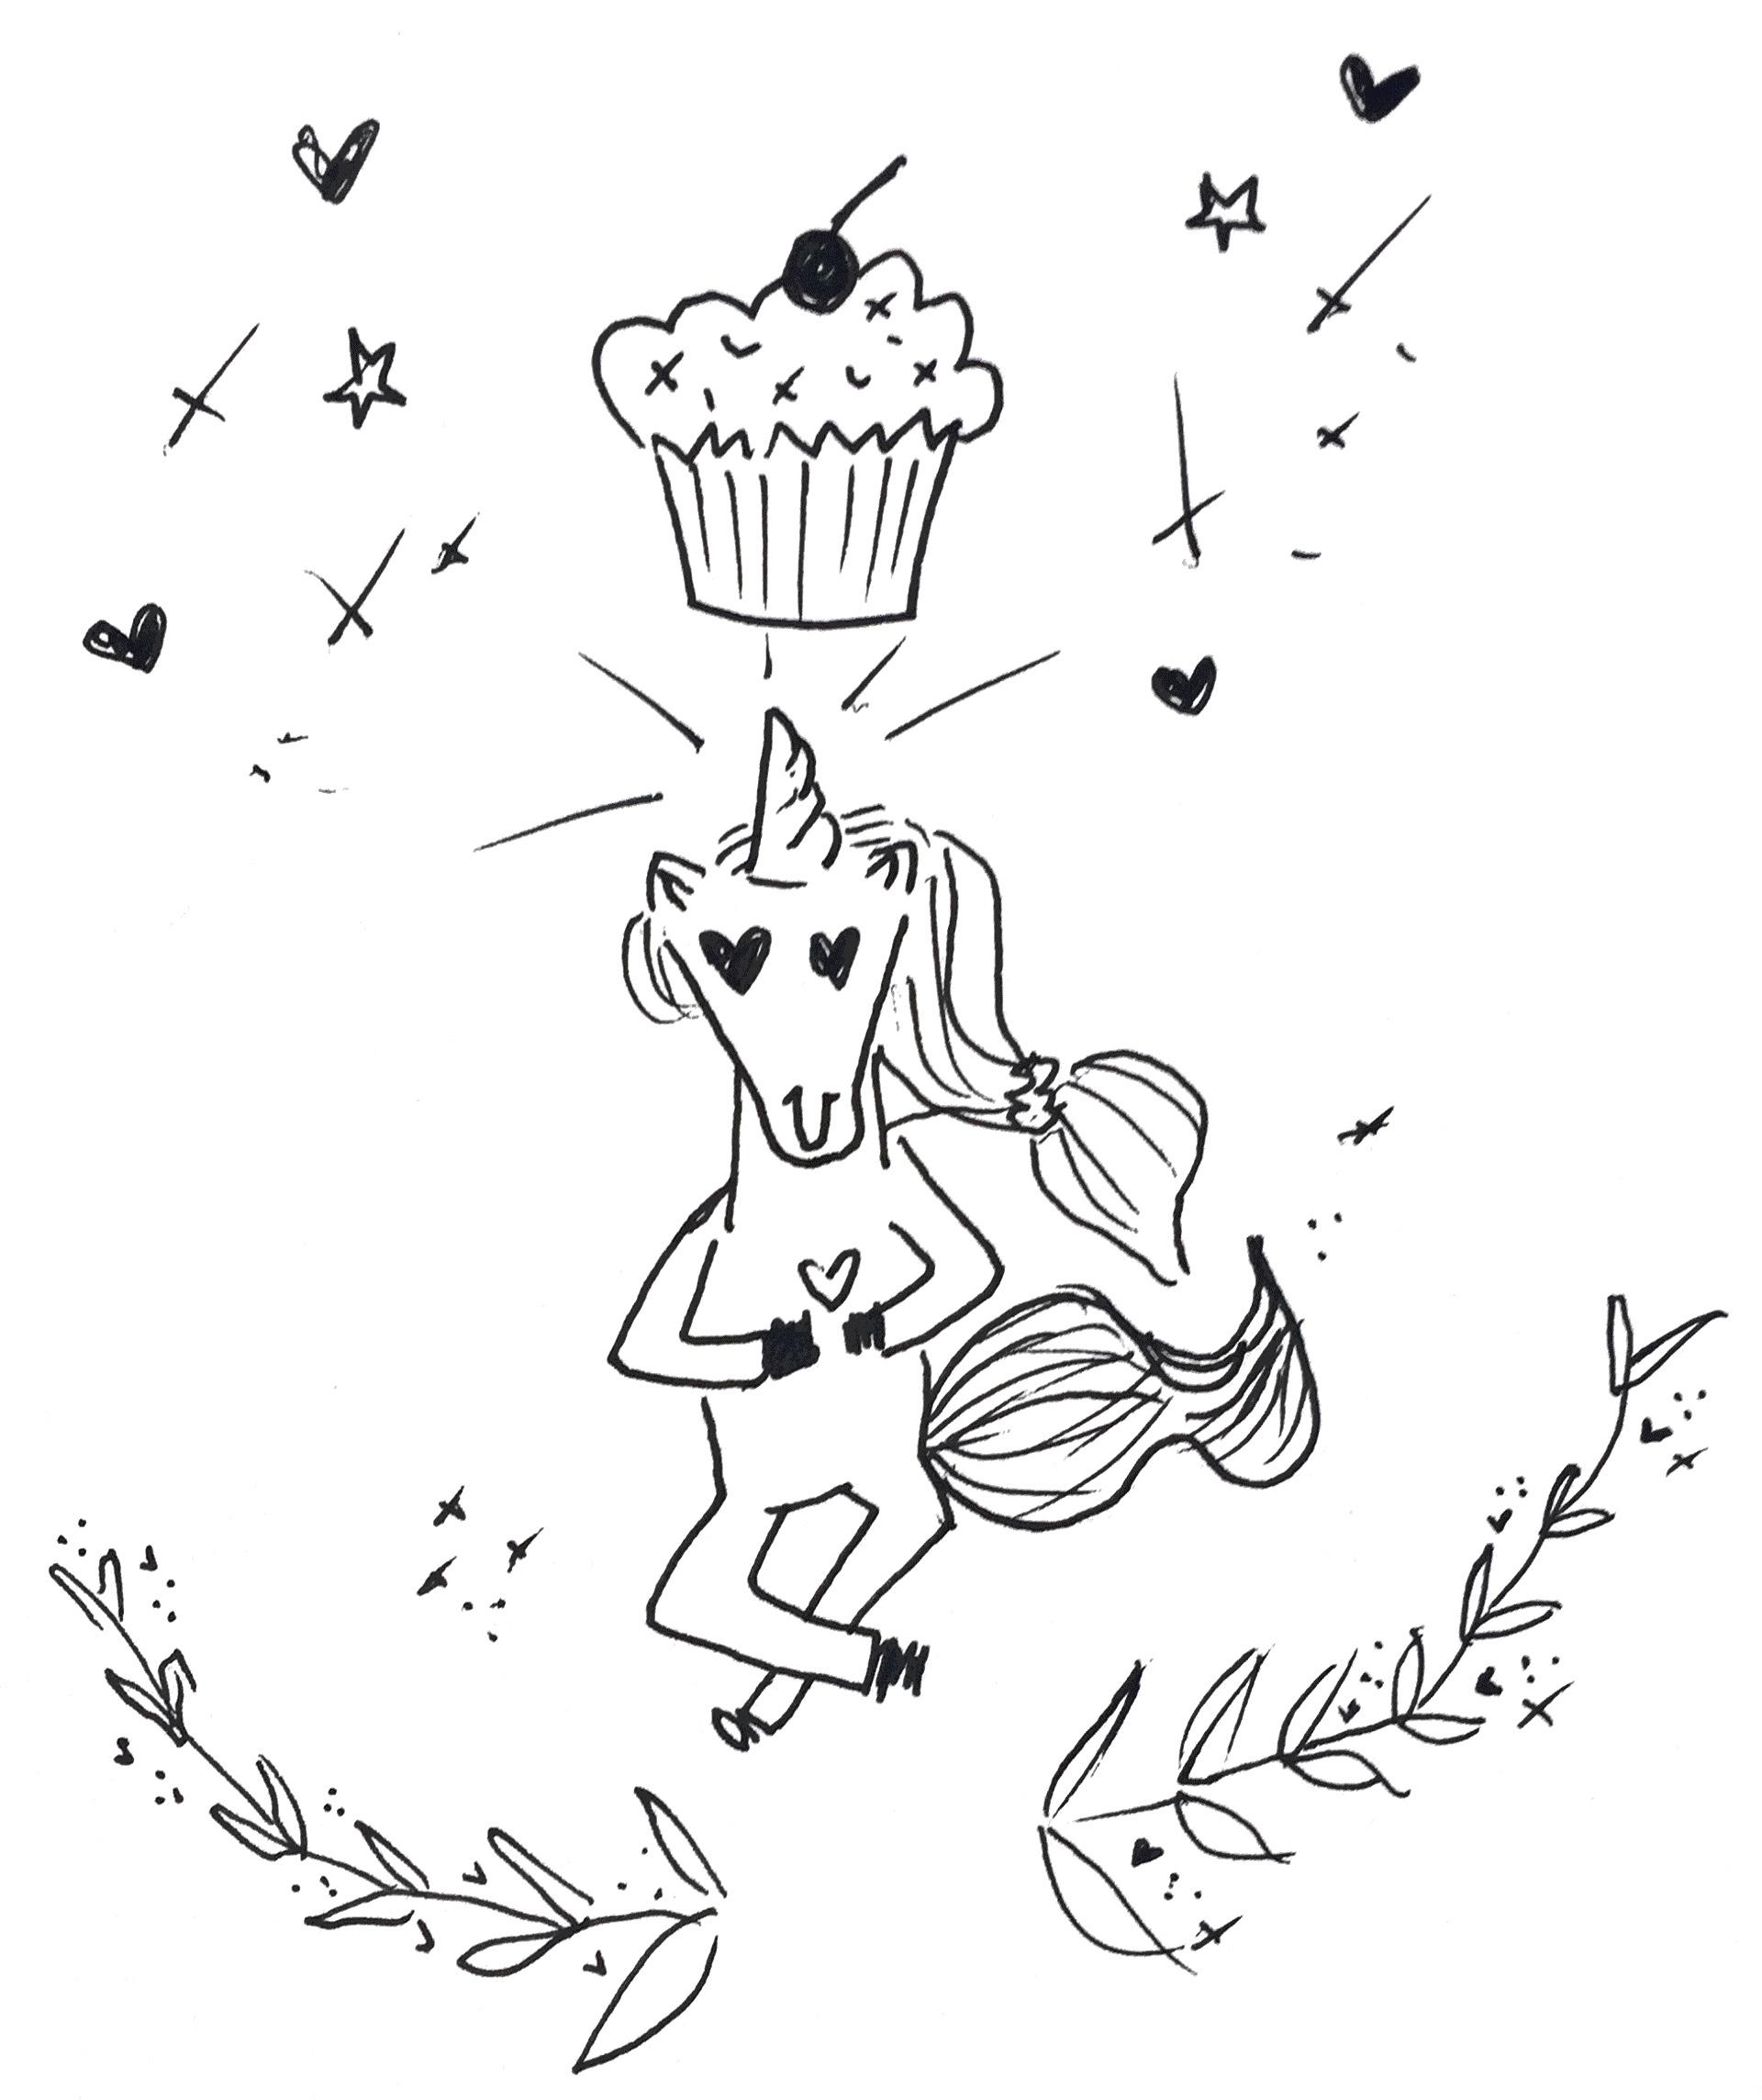 Note: I had a few friends create these illustrations, inspired by CakeSpy and me over the years. Thank you Caleigh, Sam, Jenna, Kate, and Susan!